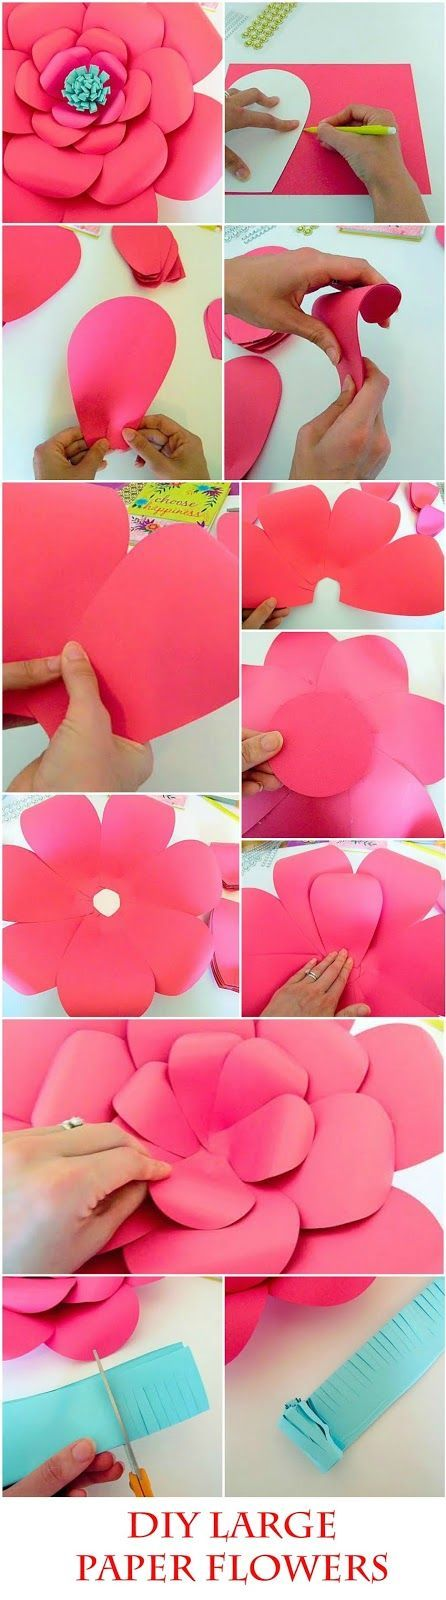 Diy giant paper flowers easy backdrop flower tutorial with diy giant paper flowers easy backdrop flower tutorial with printable flower templates its no mightylinksfo